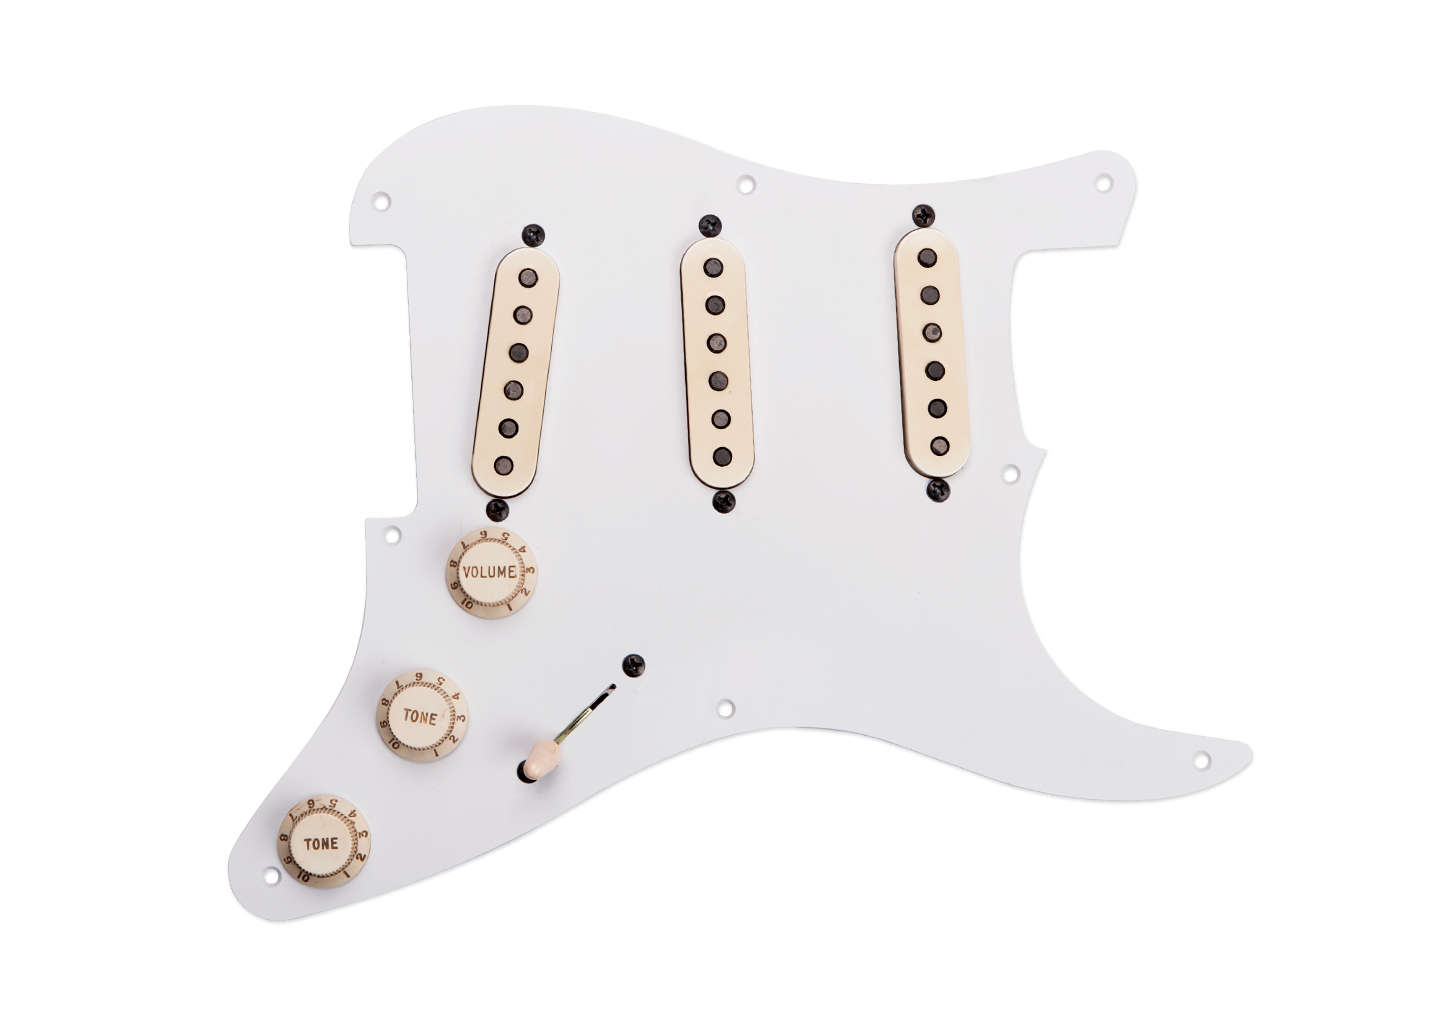 Seymour Duncan Antiquity Texas Hot Loaded Pickguard